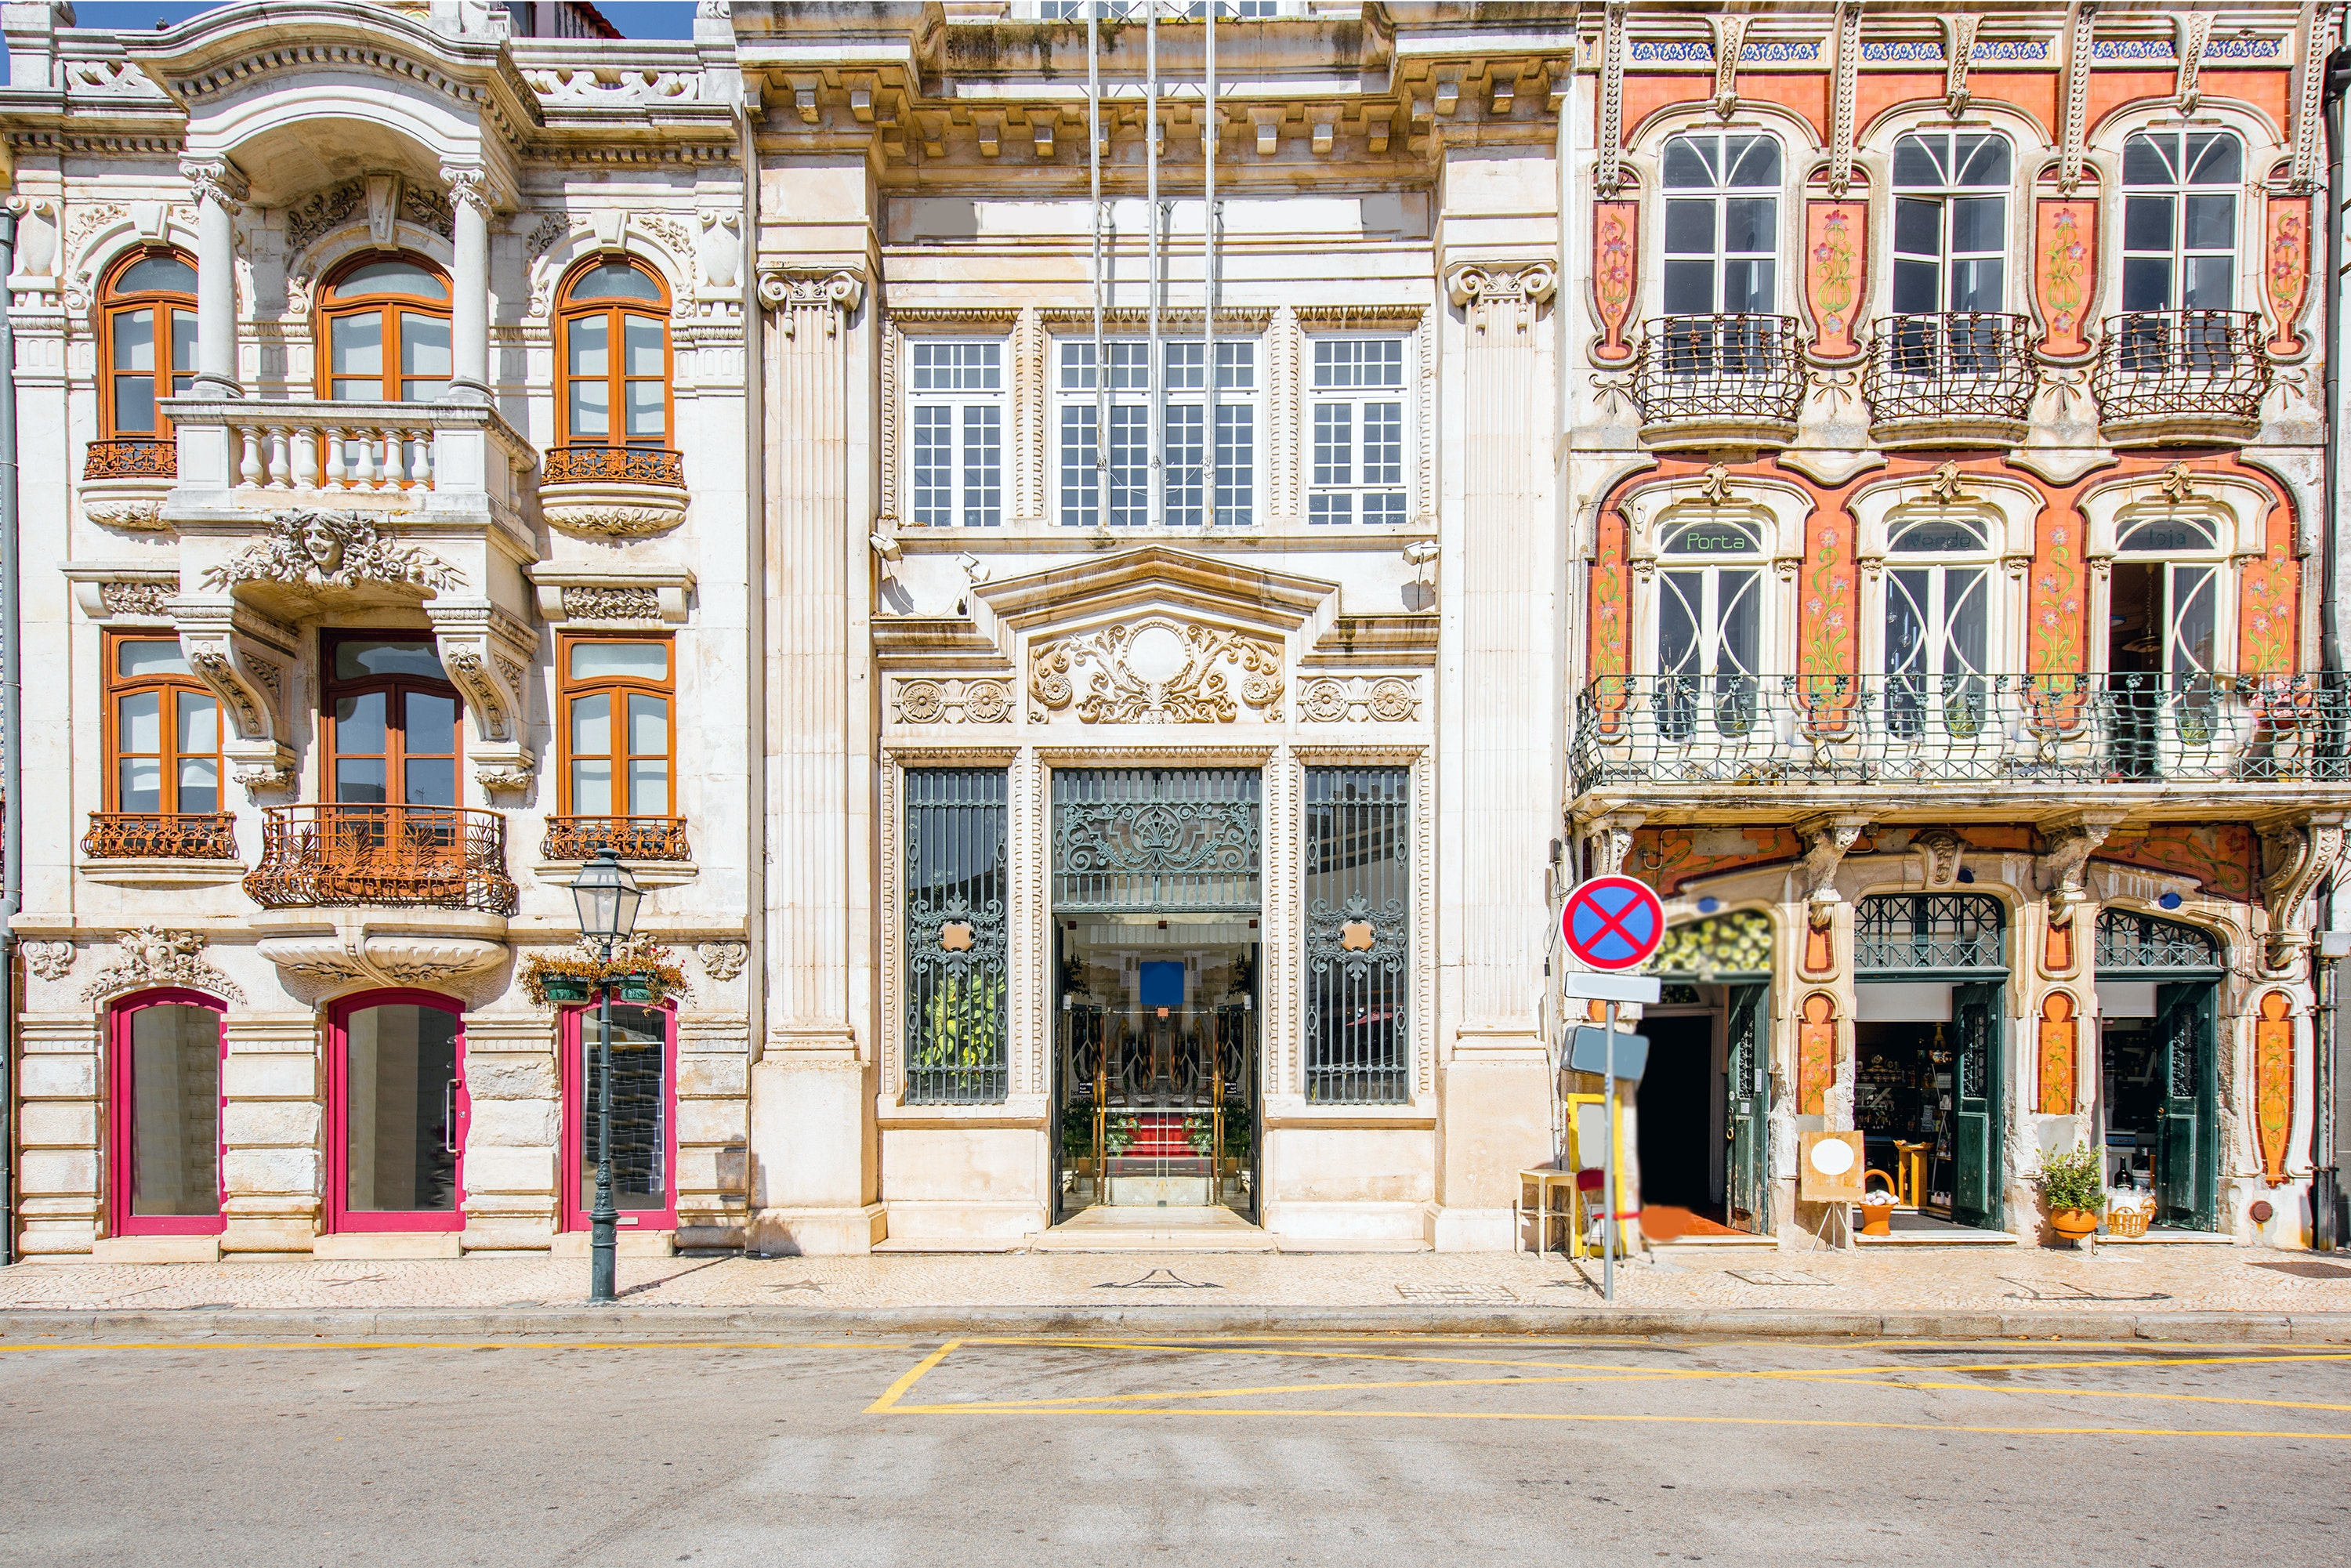 Aveiro, Portugal, is filled with art nouveau architecture.